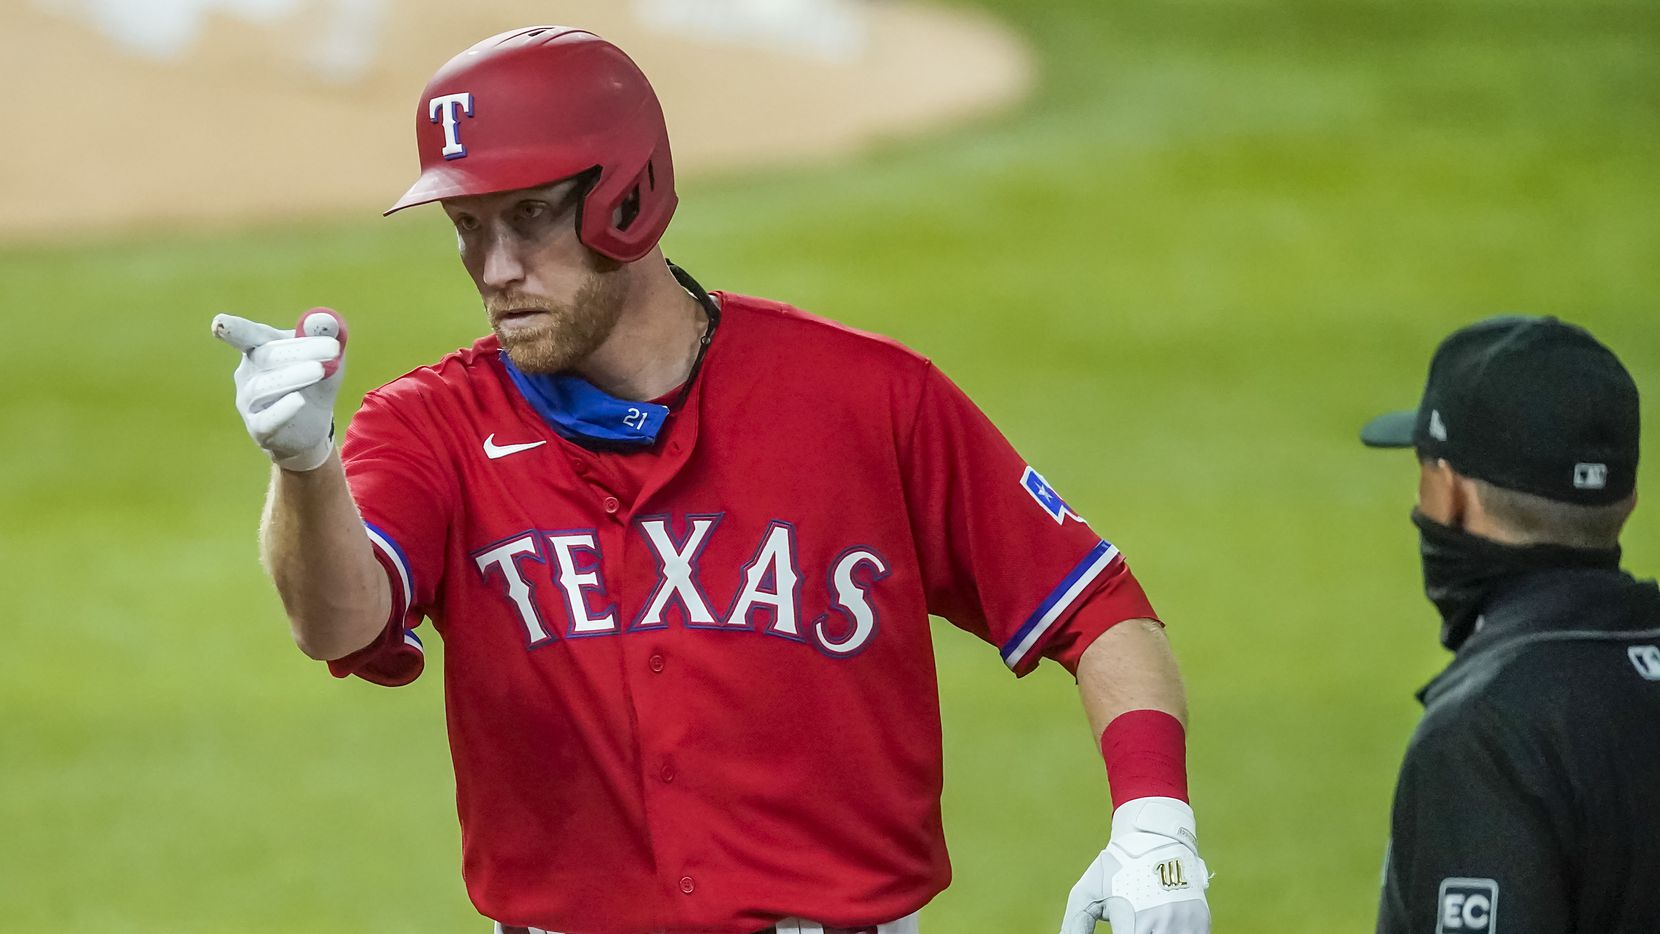 FILE - Rangers third baseman Todd Frazier celebrates after reaching base on a single during the second inning of a game against the Dodgers at Globe Life Field on Friday, Aug. 28, 2020.